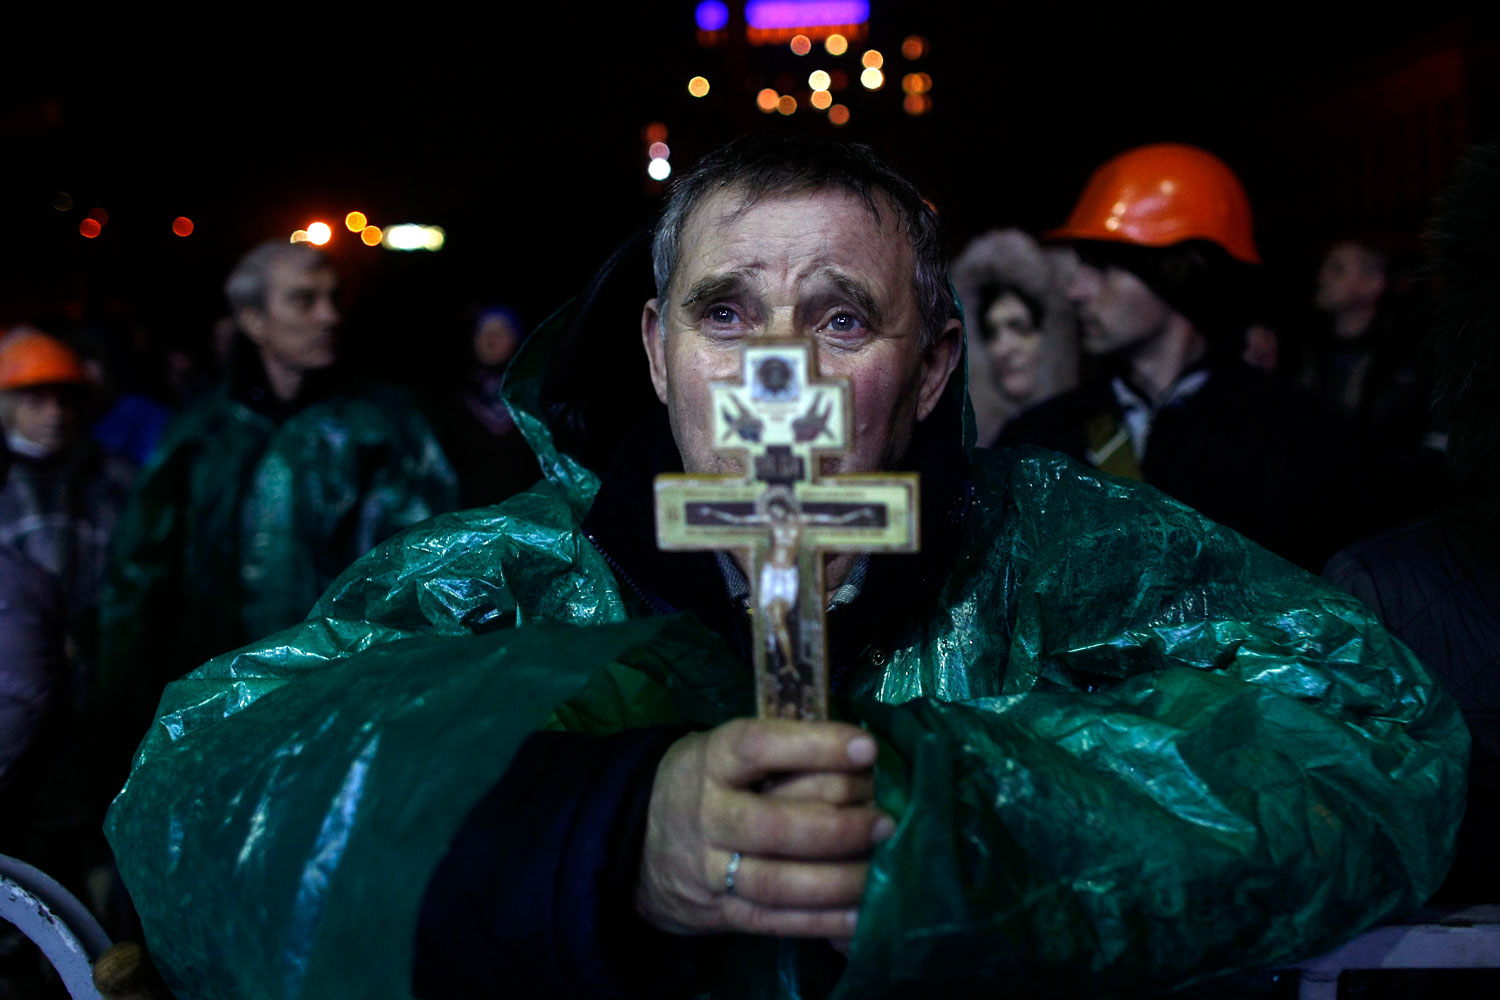 An anti-government protester holds a crucifix as he prays at Independence Square in Kiev, Ukraine, Feb. 20, 2014.